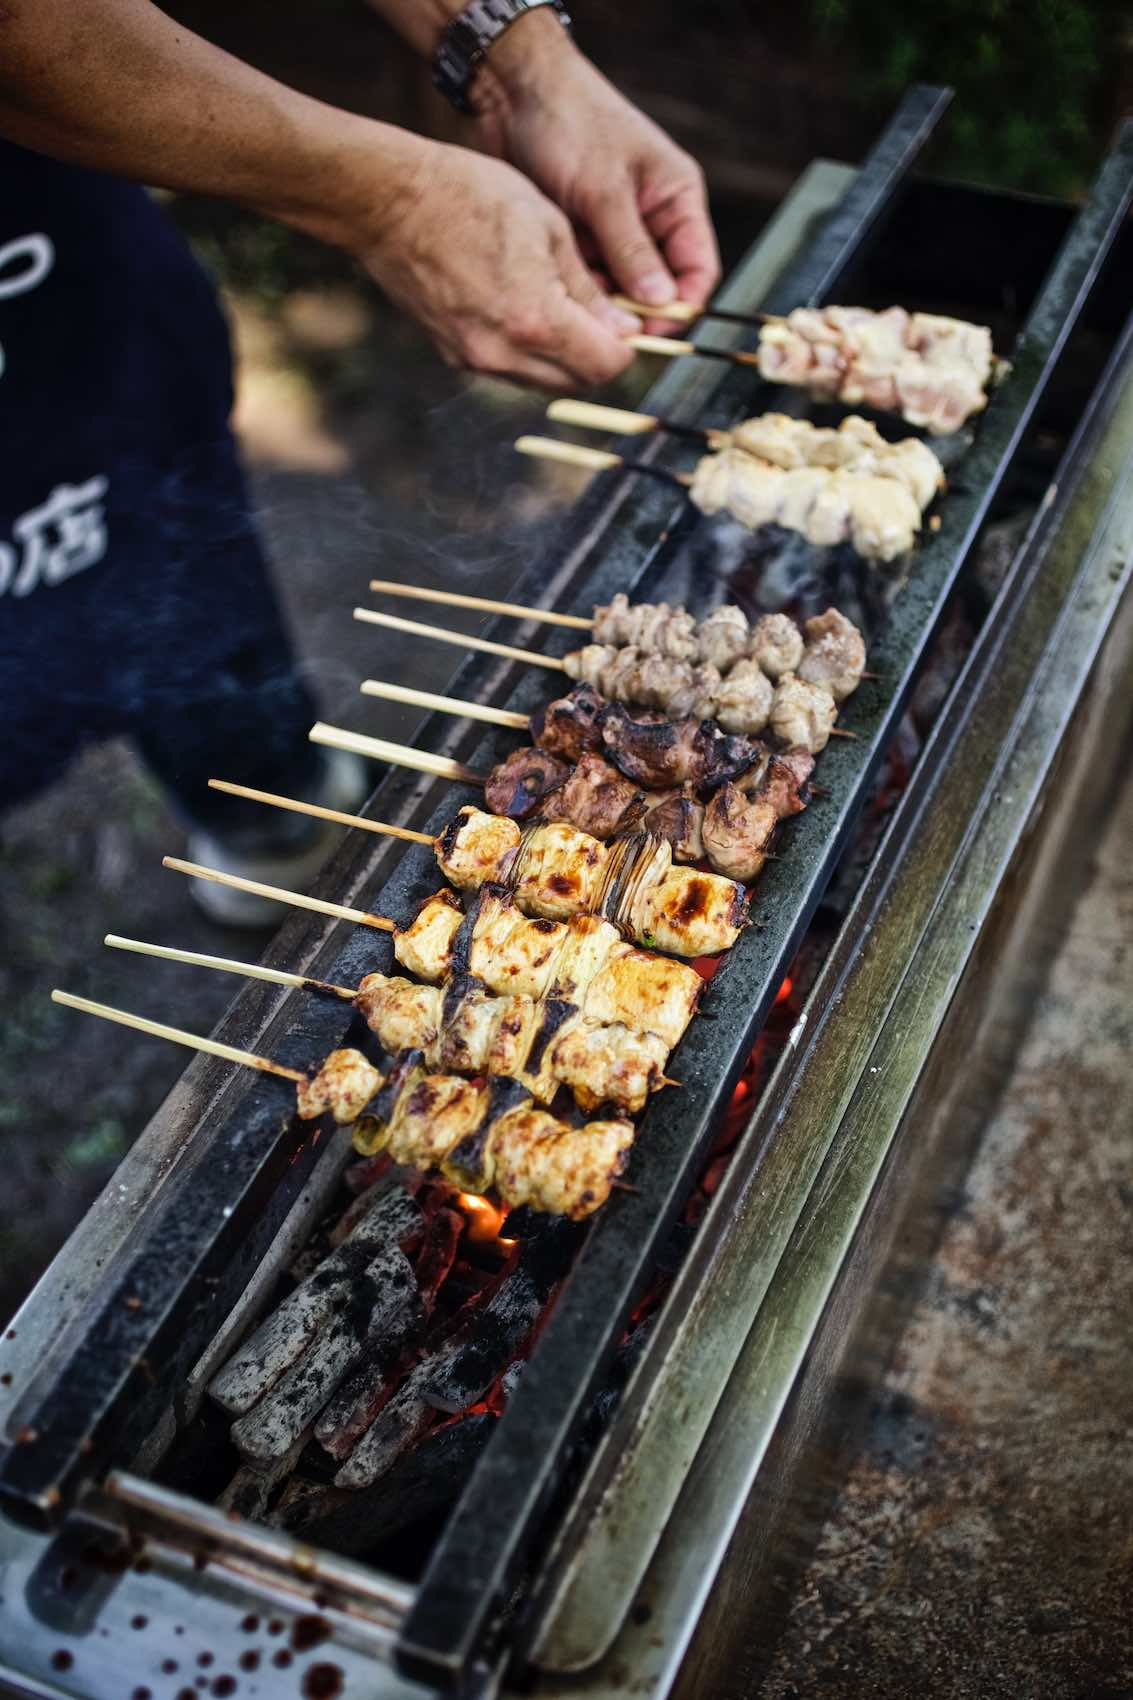 Jody Horton Photography - Assorted kebabs cooking on a charcoal fire.